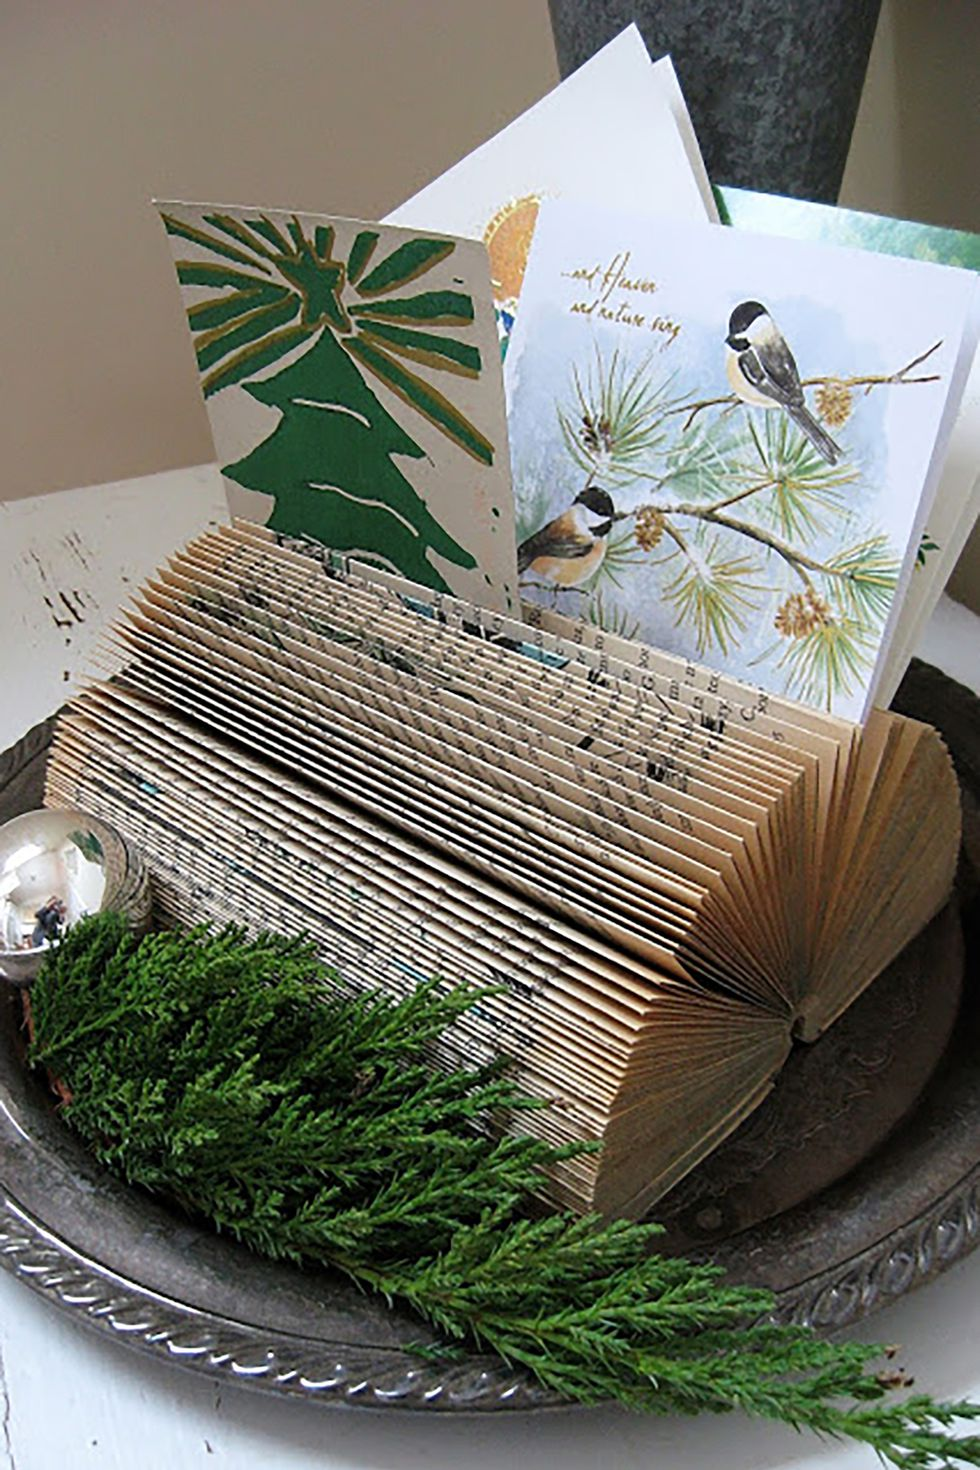 Book Card Holder: These 25 DIY Christmas Card Holders - That Double As Festive Decor will allow you to beautifuly display your cards and will also give you some great decor.